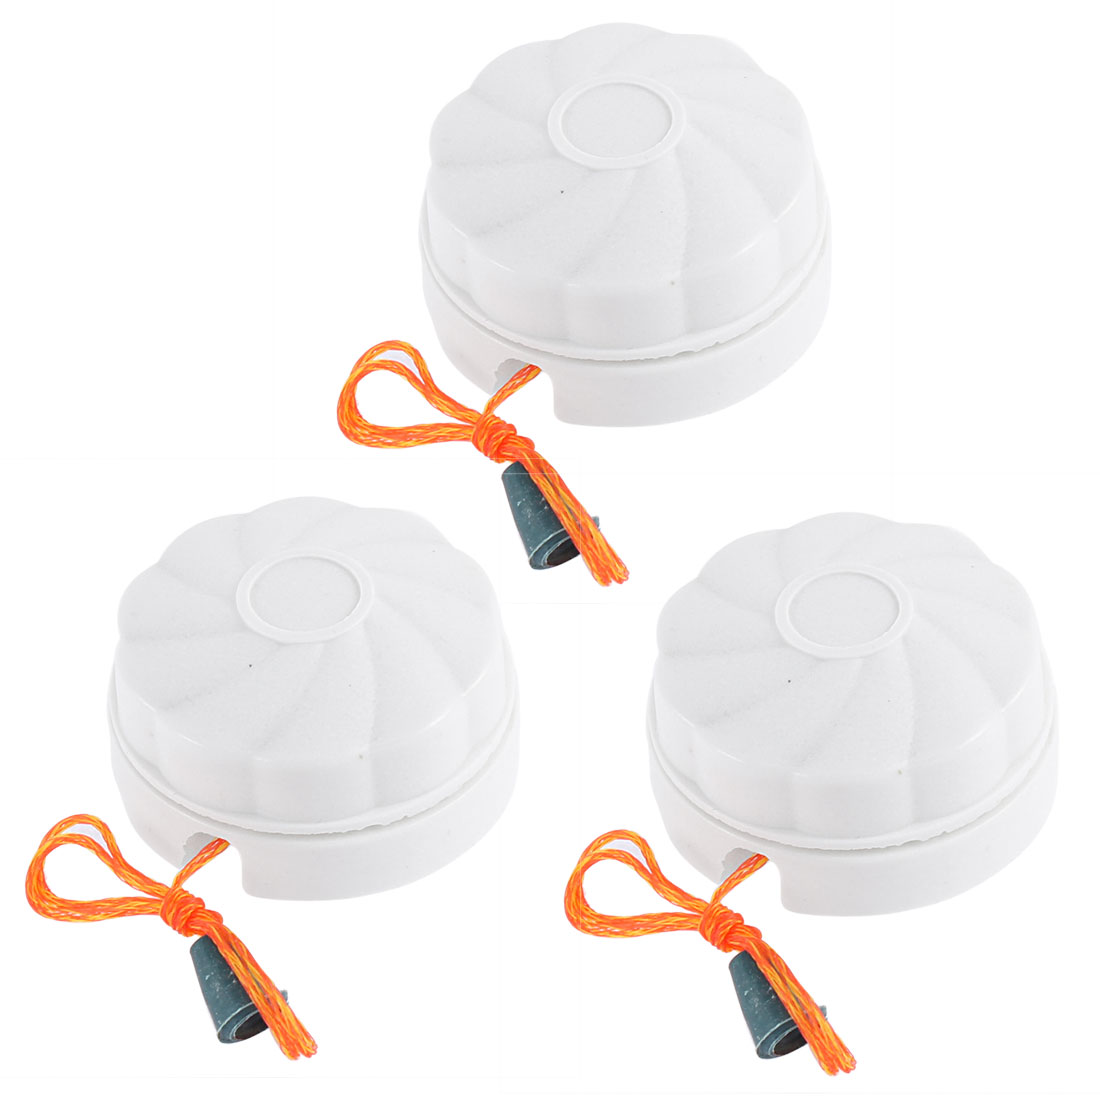 AC 250V 6A Round Shaped Bathroom Fan String Light Lamp Pull Cord Switch White 3 Pcs